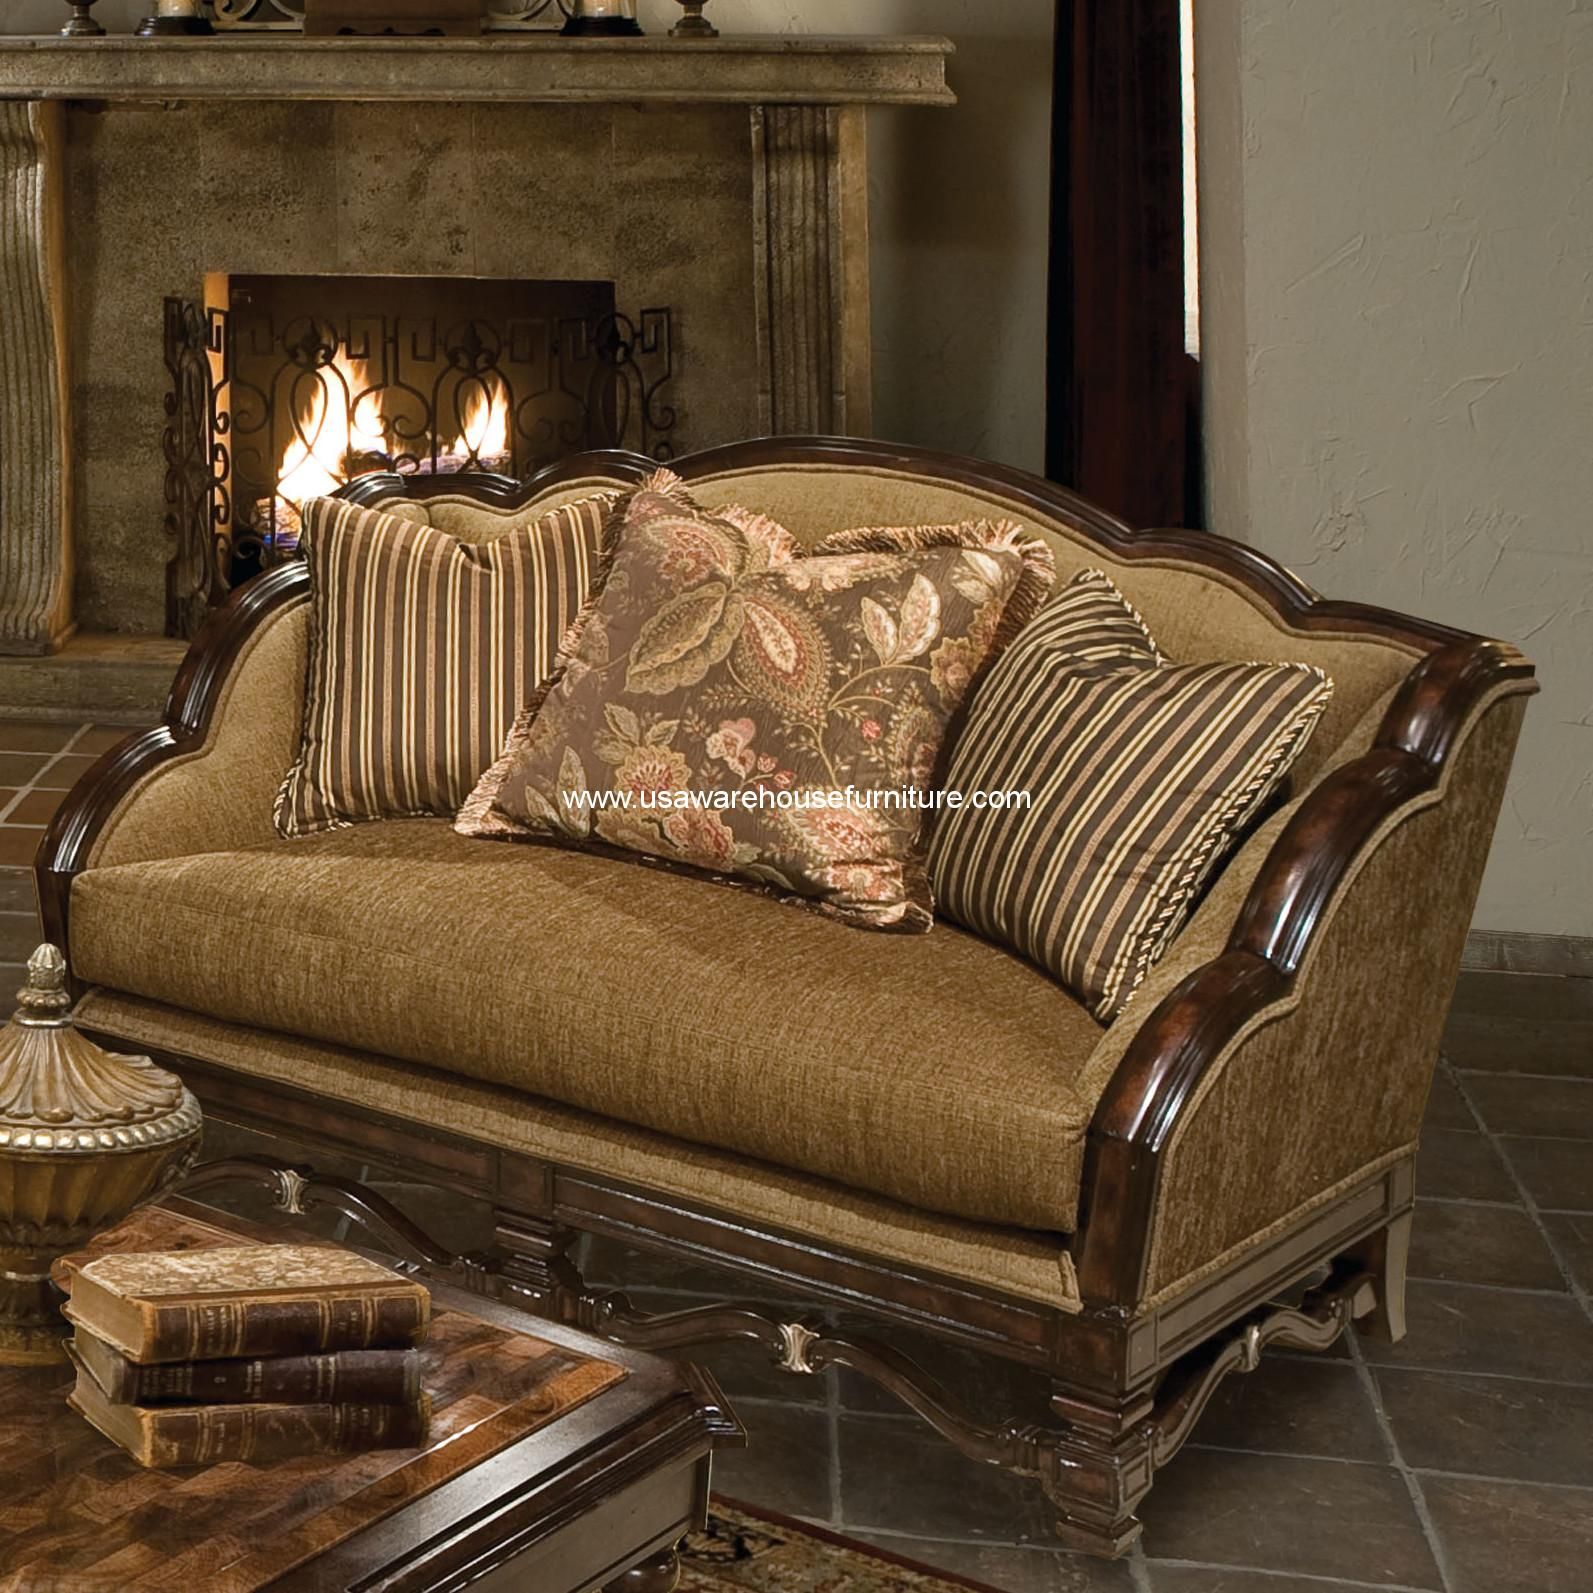 with wood gradyleather loveseat turned width grady height threshold arms item trim rolled violino and products leather